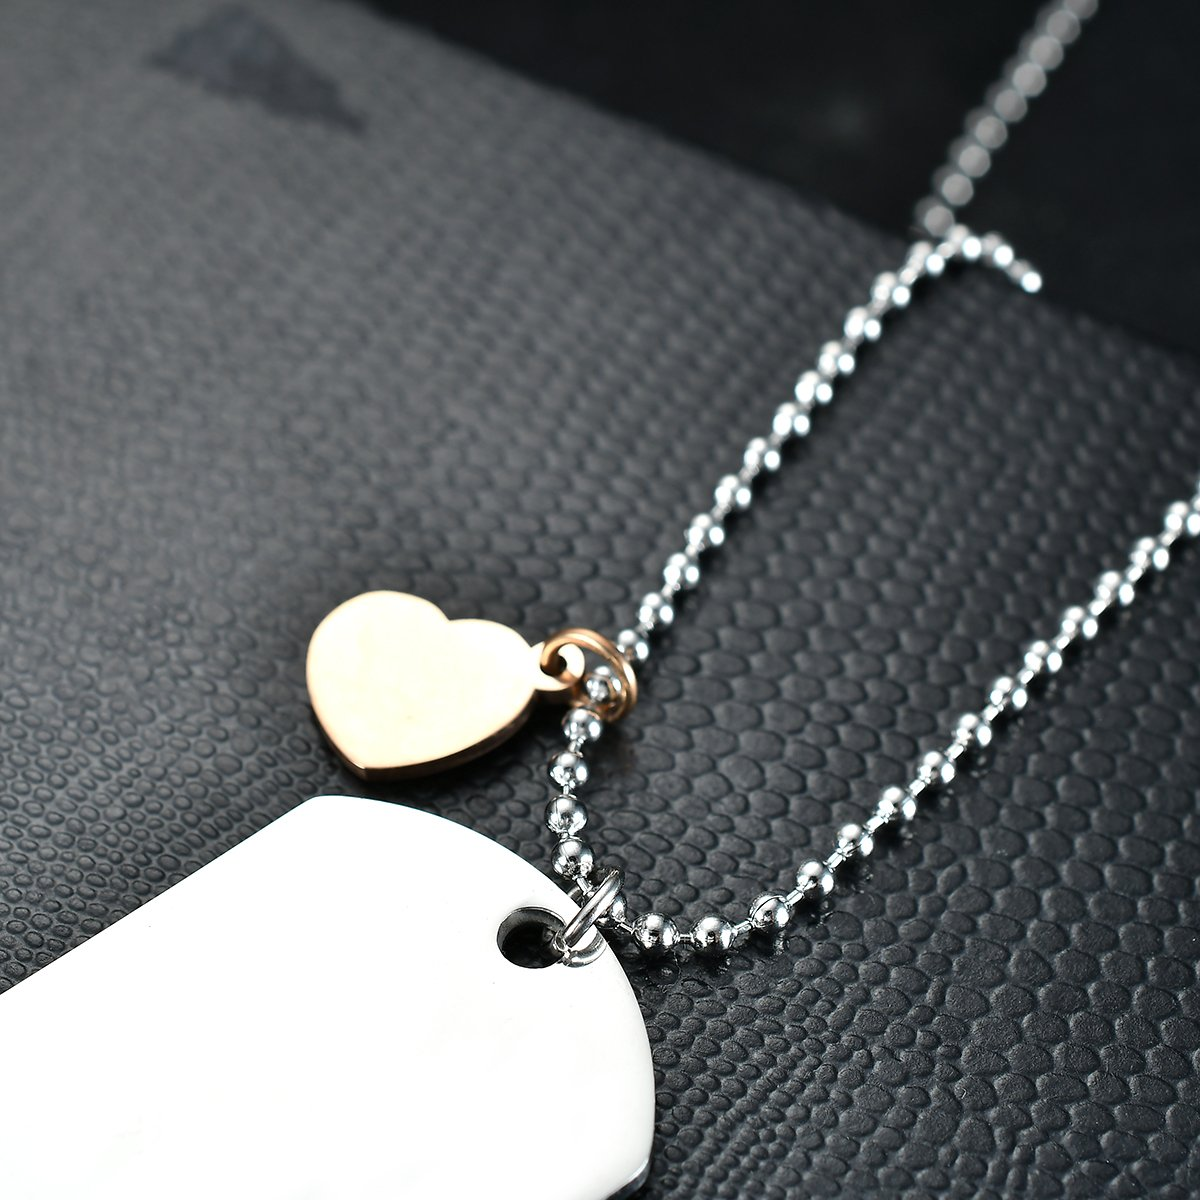 NOVLOVE To my daughter from dad Stainless Steel Dog Tag Letters To my daughter never forget how.love dad Pendant Necklace,Inspirational Gifts For daughter Jewelry by NOVLOVE (Image #5)